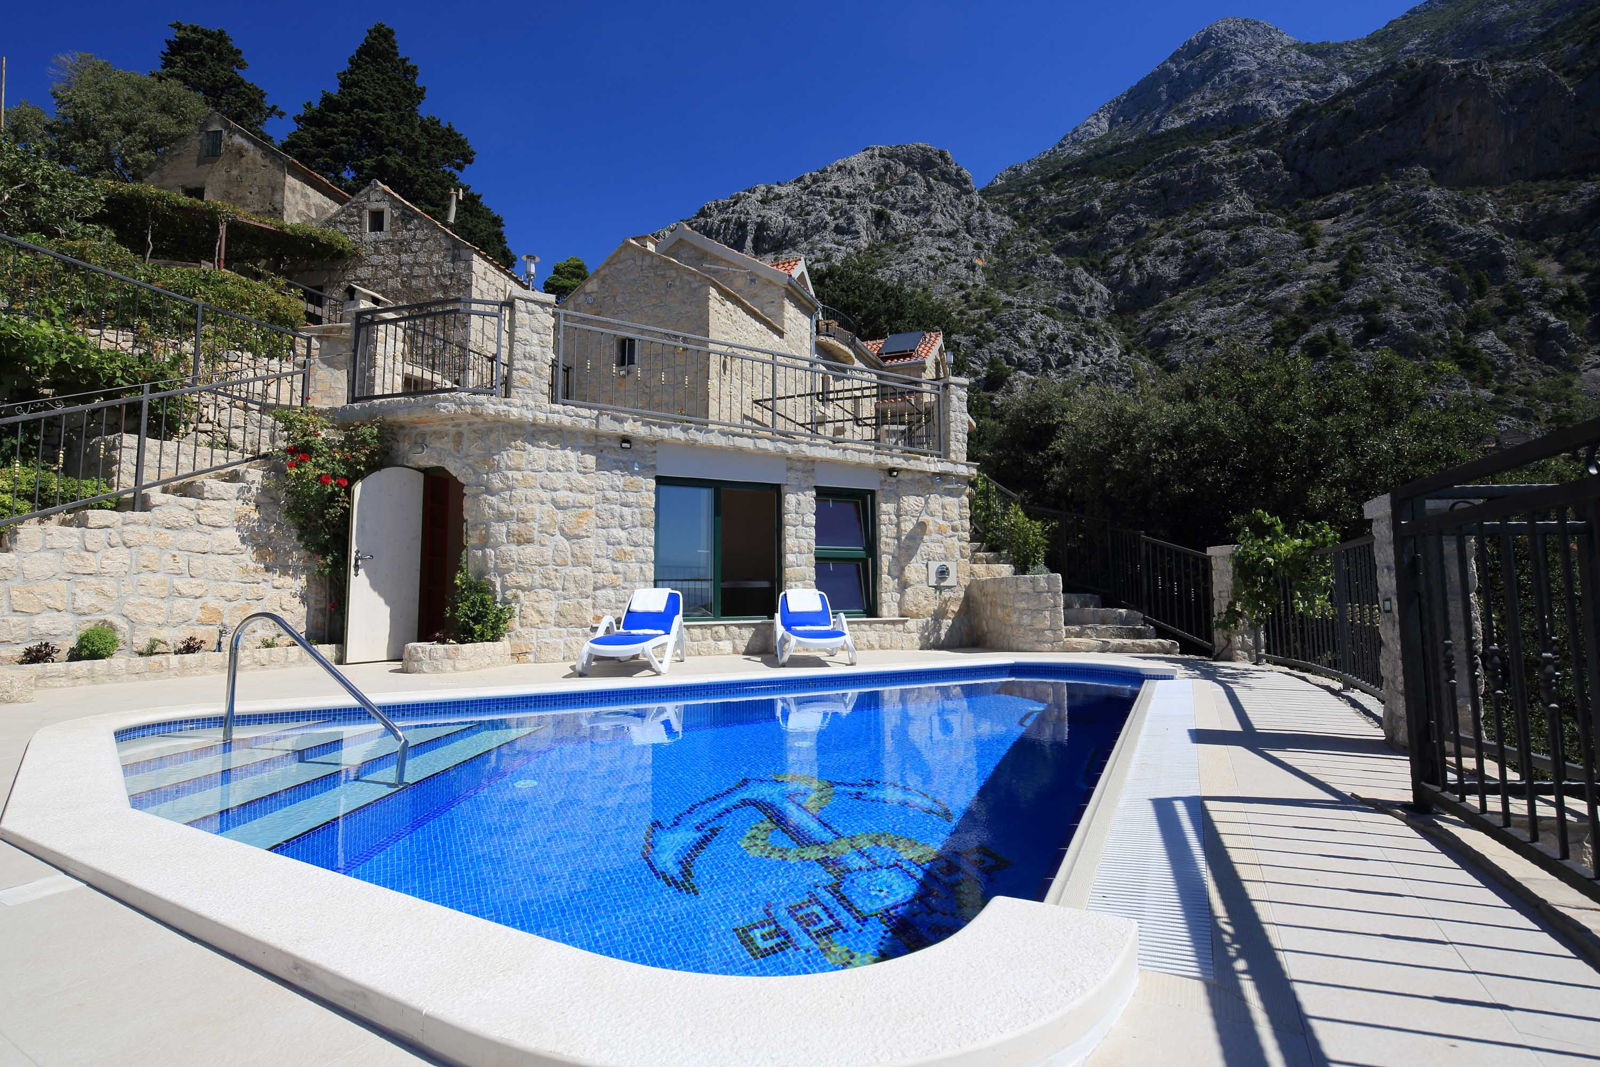 Country House Dalmatian Stone with  Pool